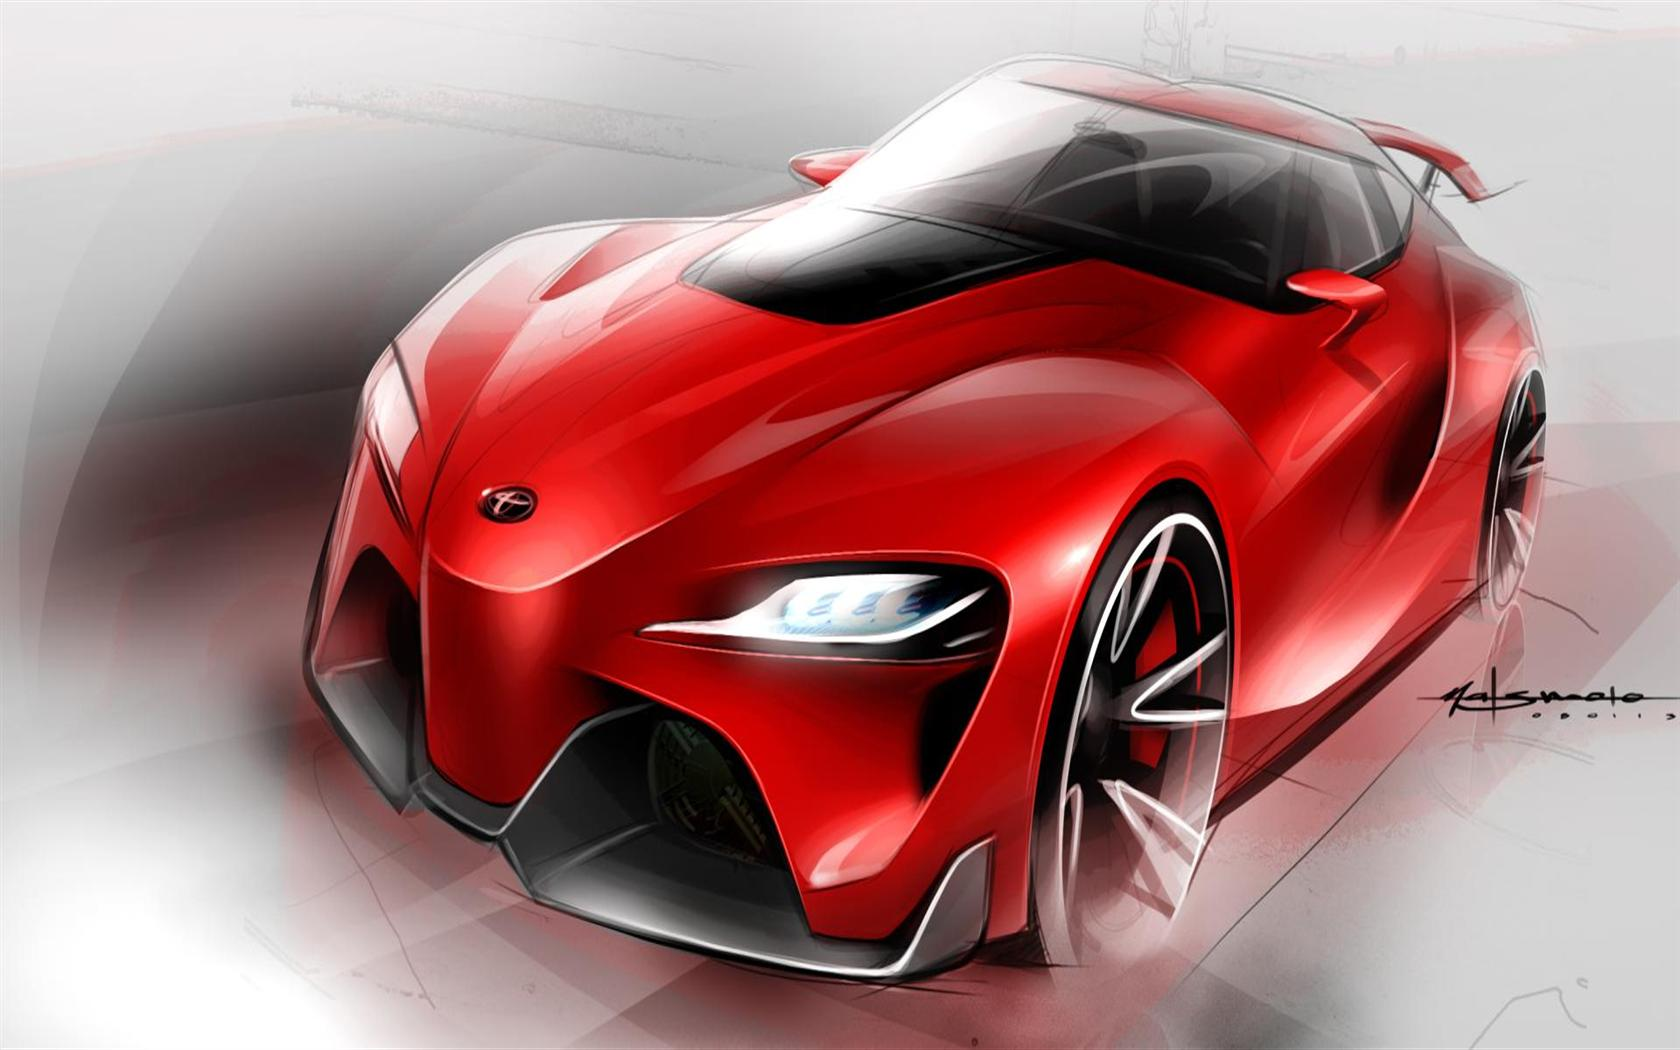 2014 Toyota ft 1 Concept Image